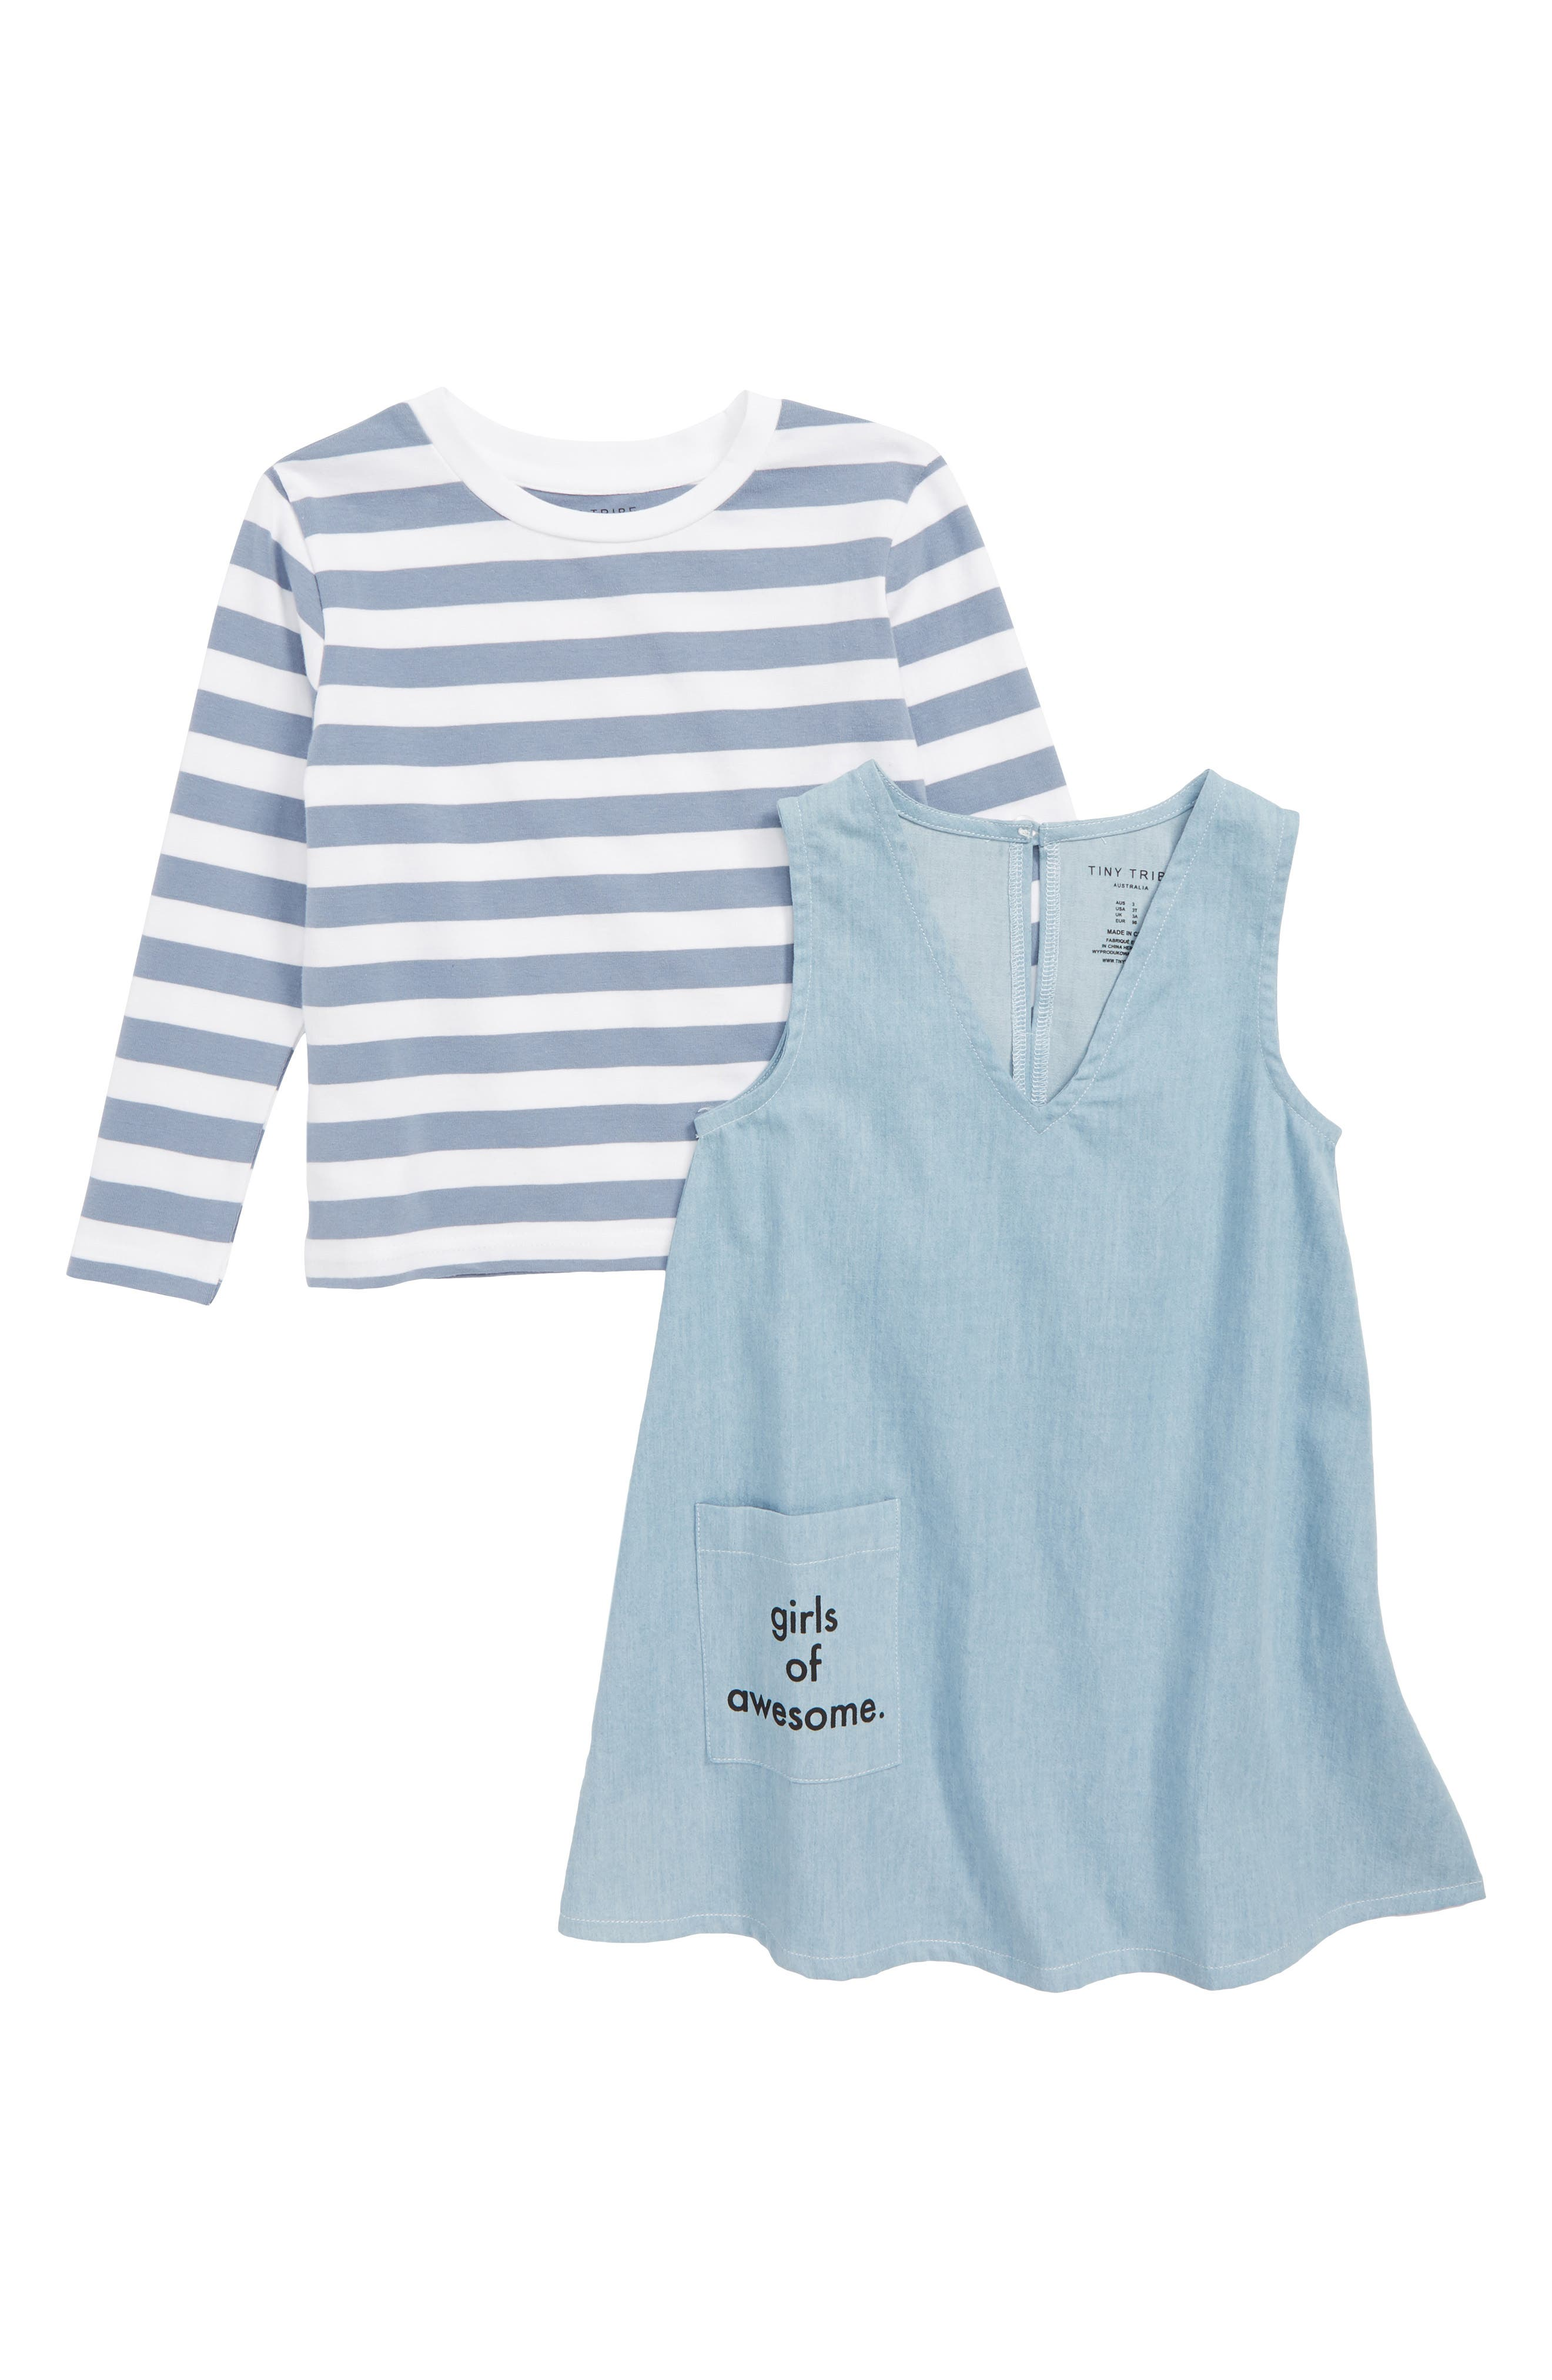 Girls of Awesome Tee & Dress Set,                         Main,                         color, BLUE / CHAMBRAY